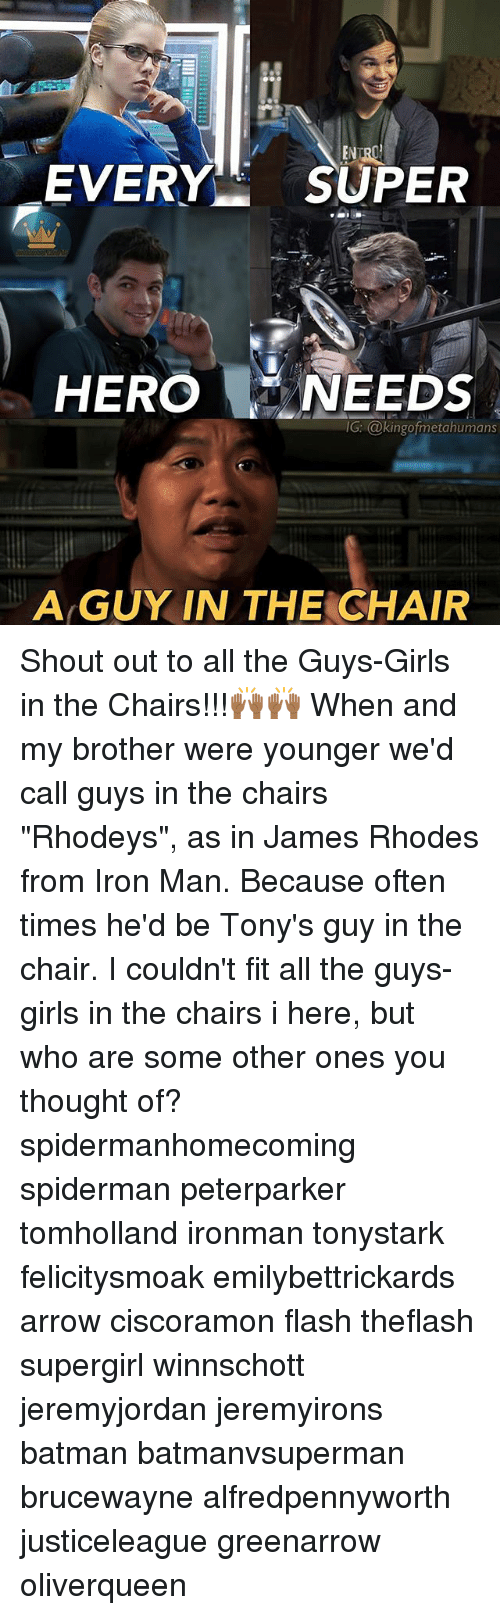 "tonys: EVERY SUPER  HERO NEEDS  IG: @kingofmetahumans  G: @kingofmetahumans  A GUY IN THE CHAIR Shout out to all the Guys-Girls in the Chairs!!!🙌🏾🙌🏾 When and my brother were younger we'd call guys in the chairs ""Rhodeys"", as in James Rhodes from Iron Man. Because often times he'd be Tony's guy in the chair. I couldn't fit all the guys-girls in the chairs i here, but who are some other ones you thought of? spidermanhomecoming spiderman peterparker tomholland ironman tonystark felicitysmoak emilybettrickards arrow ciscoramon flash theflash supergirl winnschott jeremyjordan jeremyirons batman batmanvsuperman brucewayne alfredpennyworth justiceleague greenarrow oliverqueen"